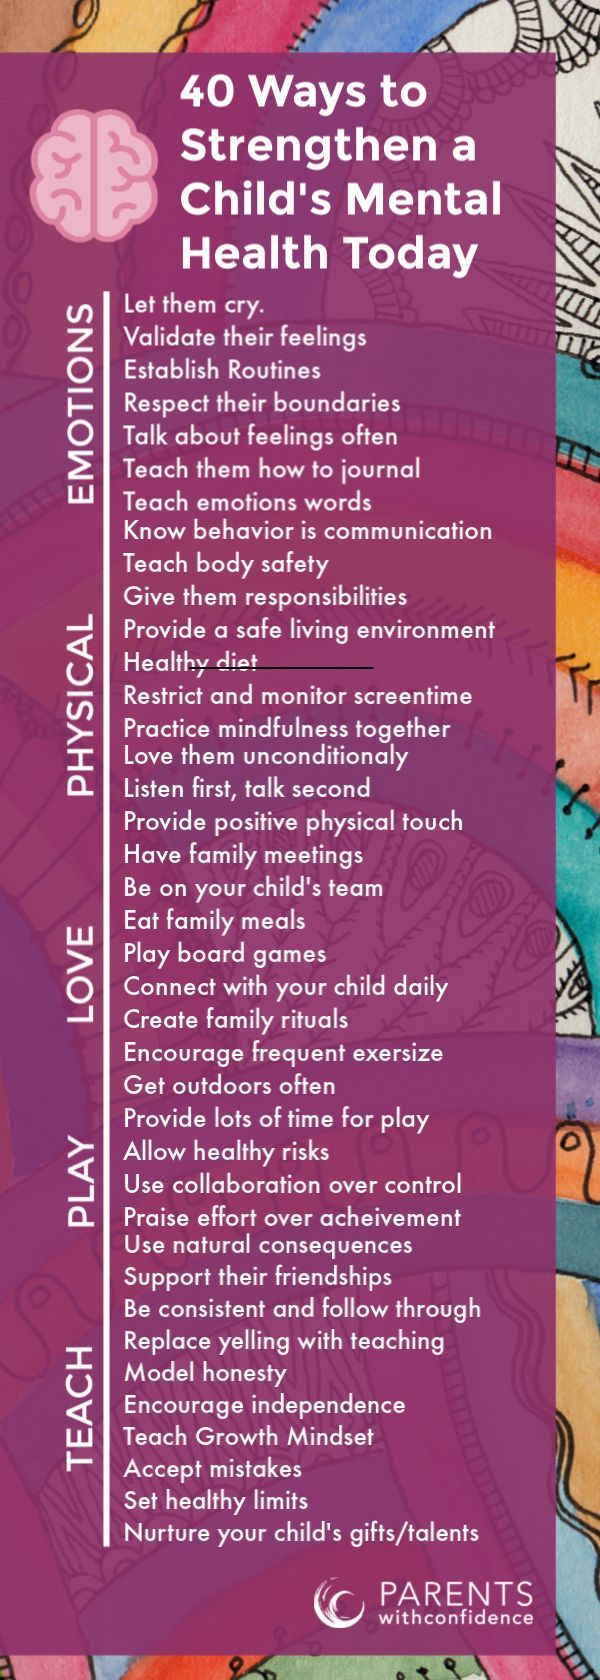 Good mental health is the foundation for a successful future and healthy relationships. The environment you provide for your child each day holds many opportunities for nourishing good mental health in childhood and beyond.  Childhood mental health awareness   #mentalhealth #childhoodmentalhealth #childrensmentalhealth #emotionalwell-being #mentalhealthmatters #parenting #parentswithconfidence #parenting